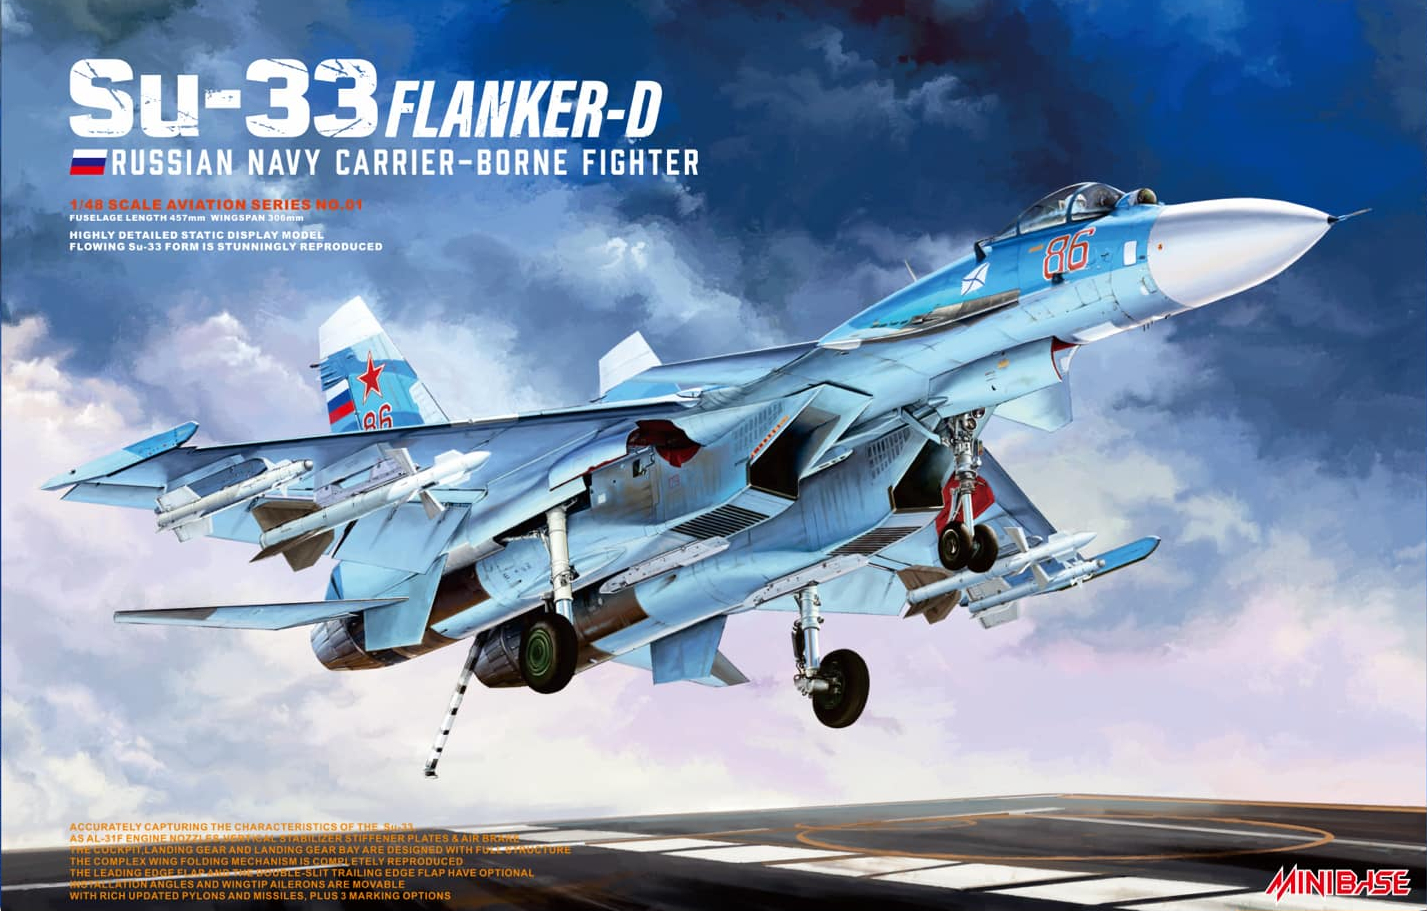 1/48 Su-33 Flanker-D Russian Navy Carrier-Borne Fighter - Minibase